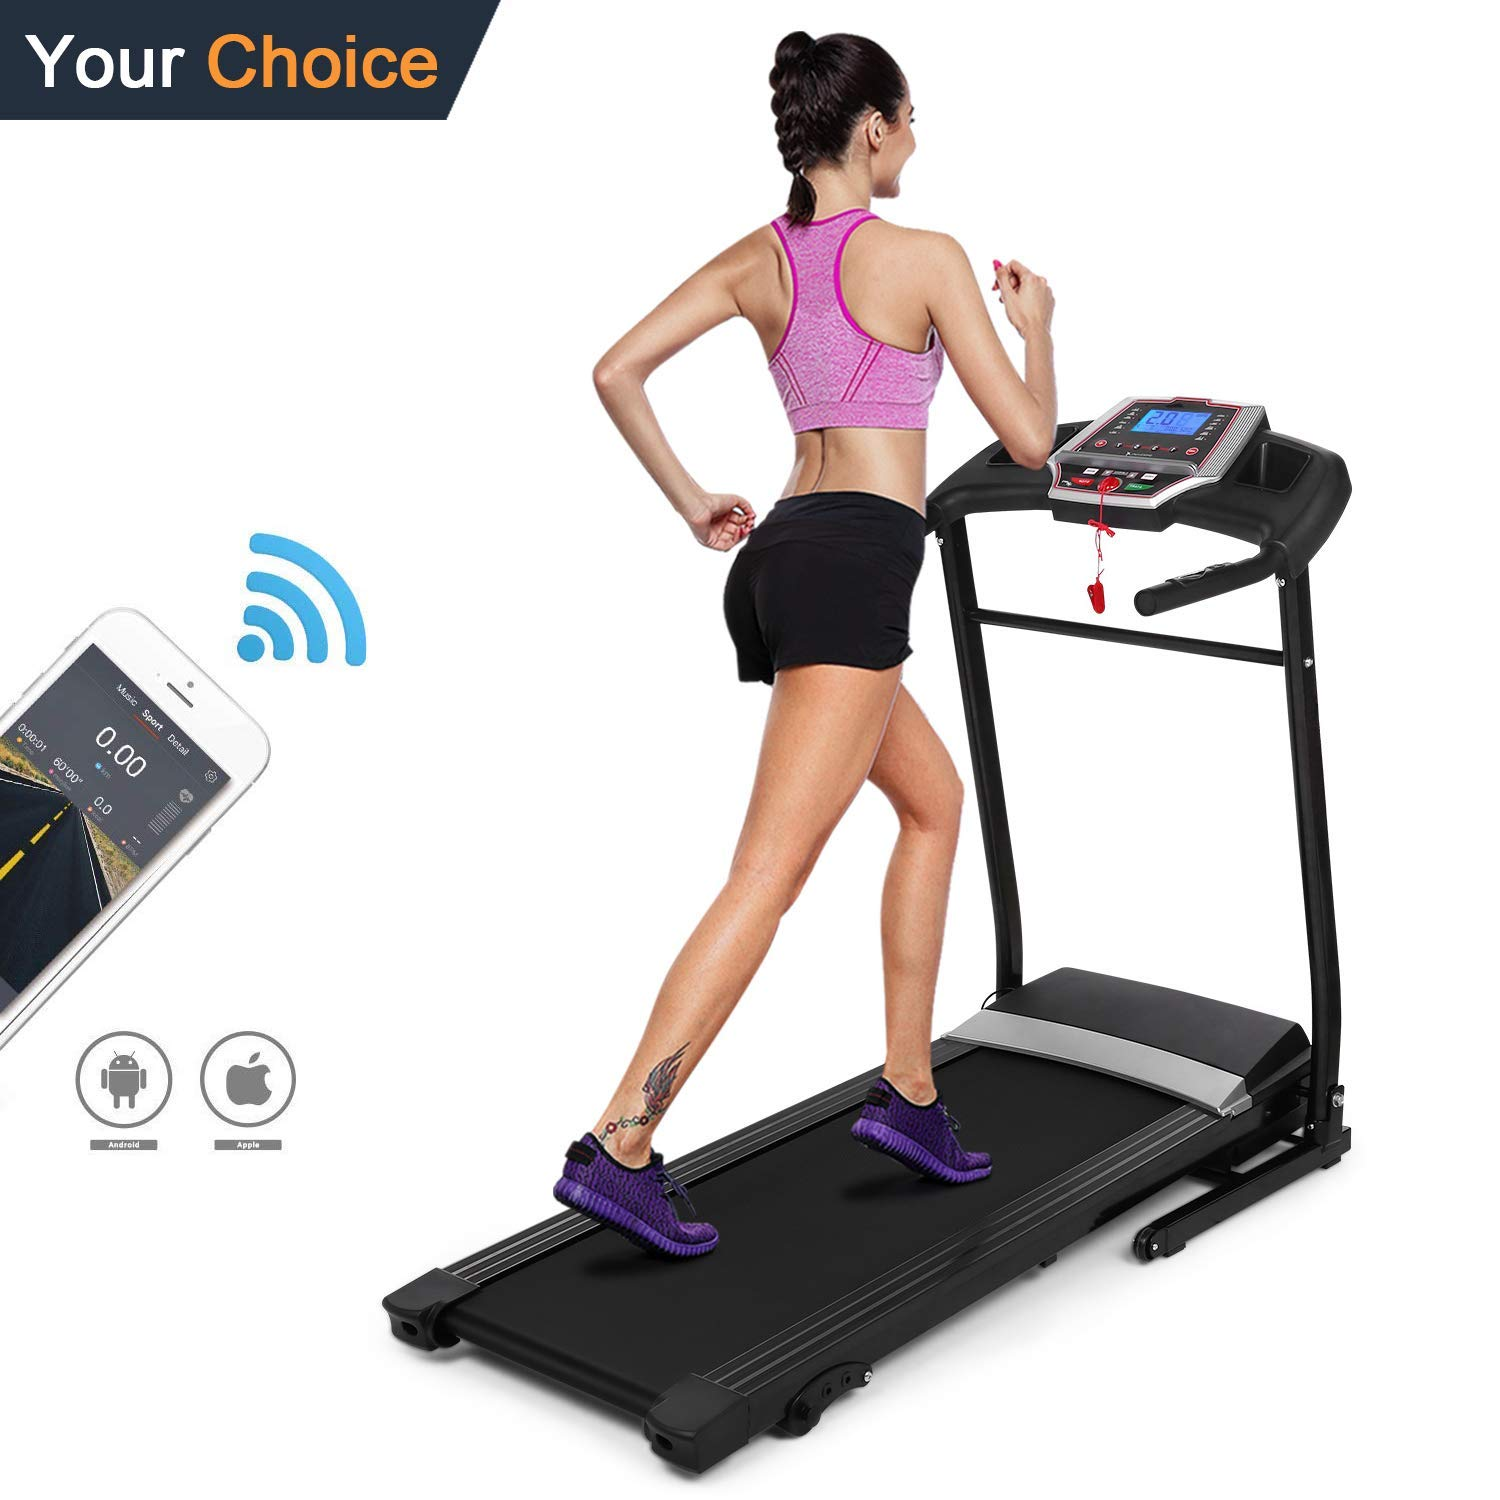 Yiilove Folding Treadmill, Electric Motorized Treadmill Machine with Incline for Home/Office Exercise [US Stock](2.25 HP - Black)